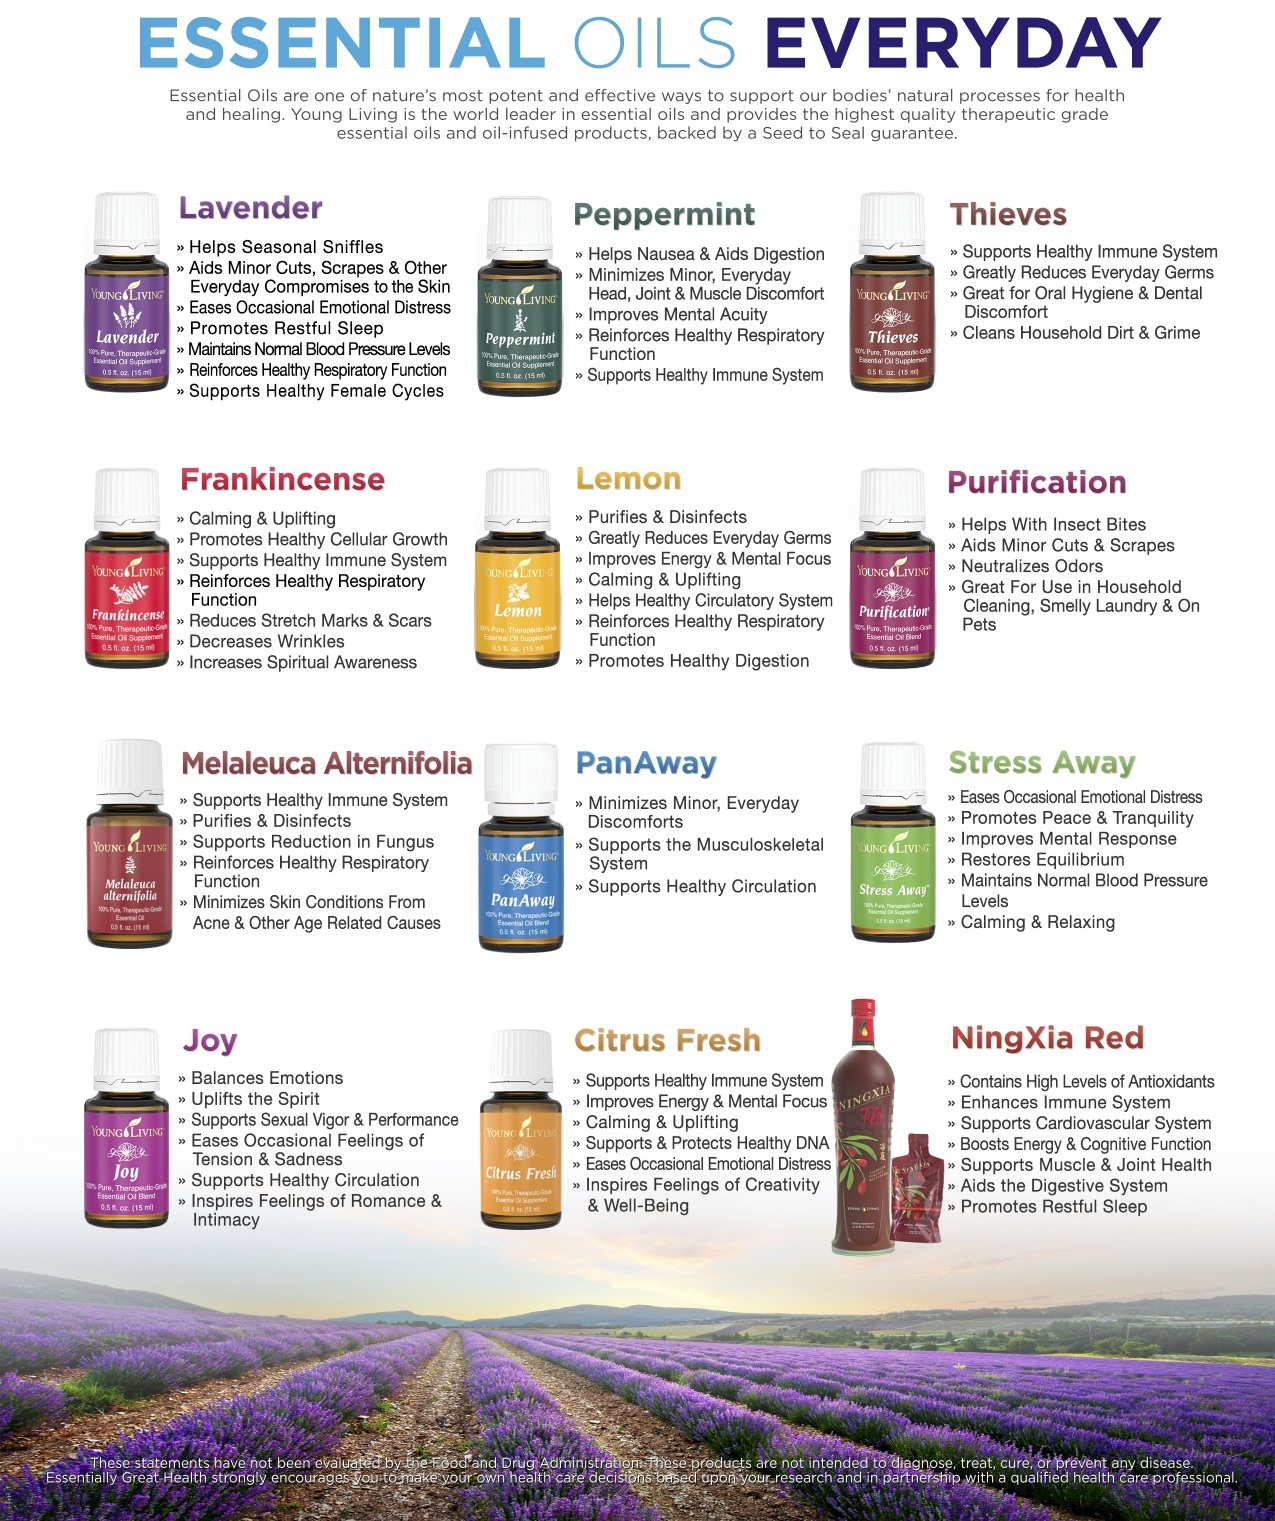 Essential Oils Holistic Health Herbalist